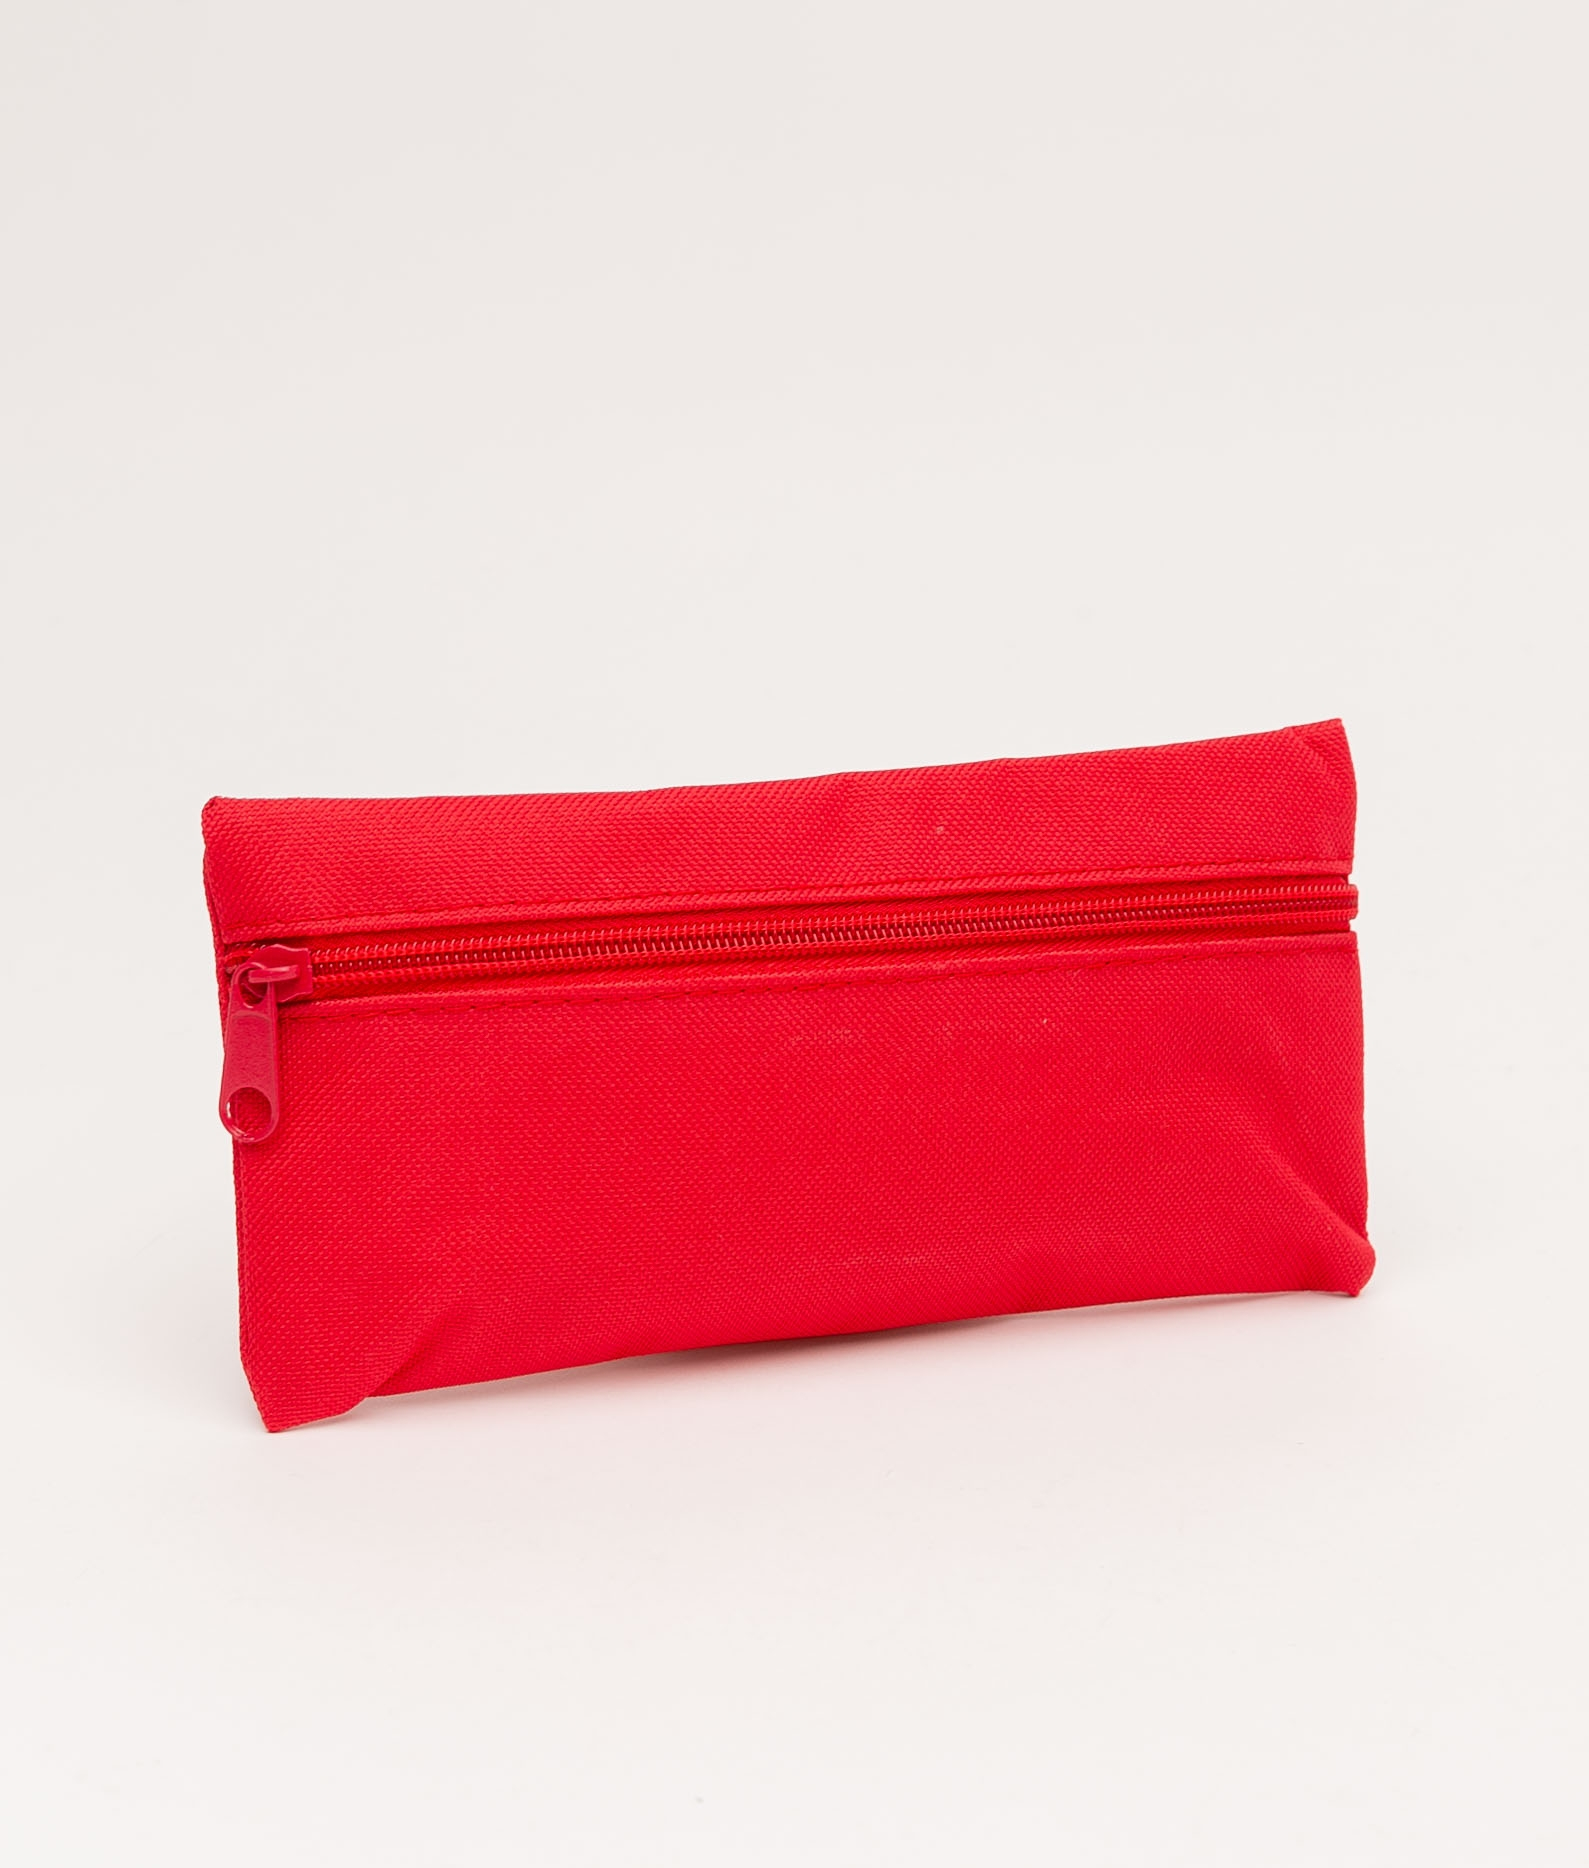 CASE COLINA - RED